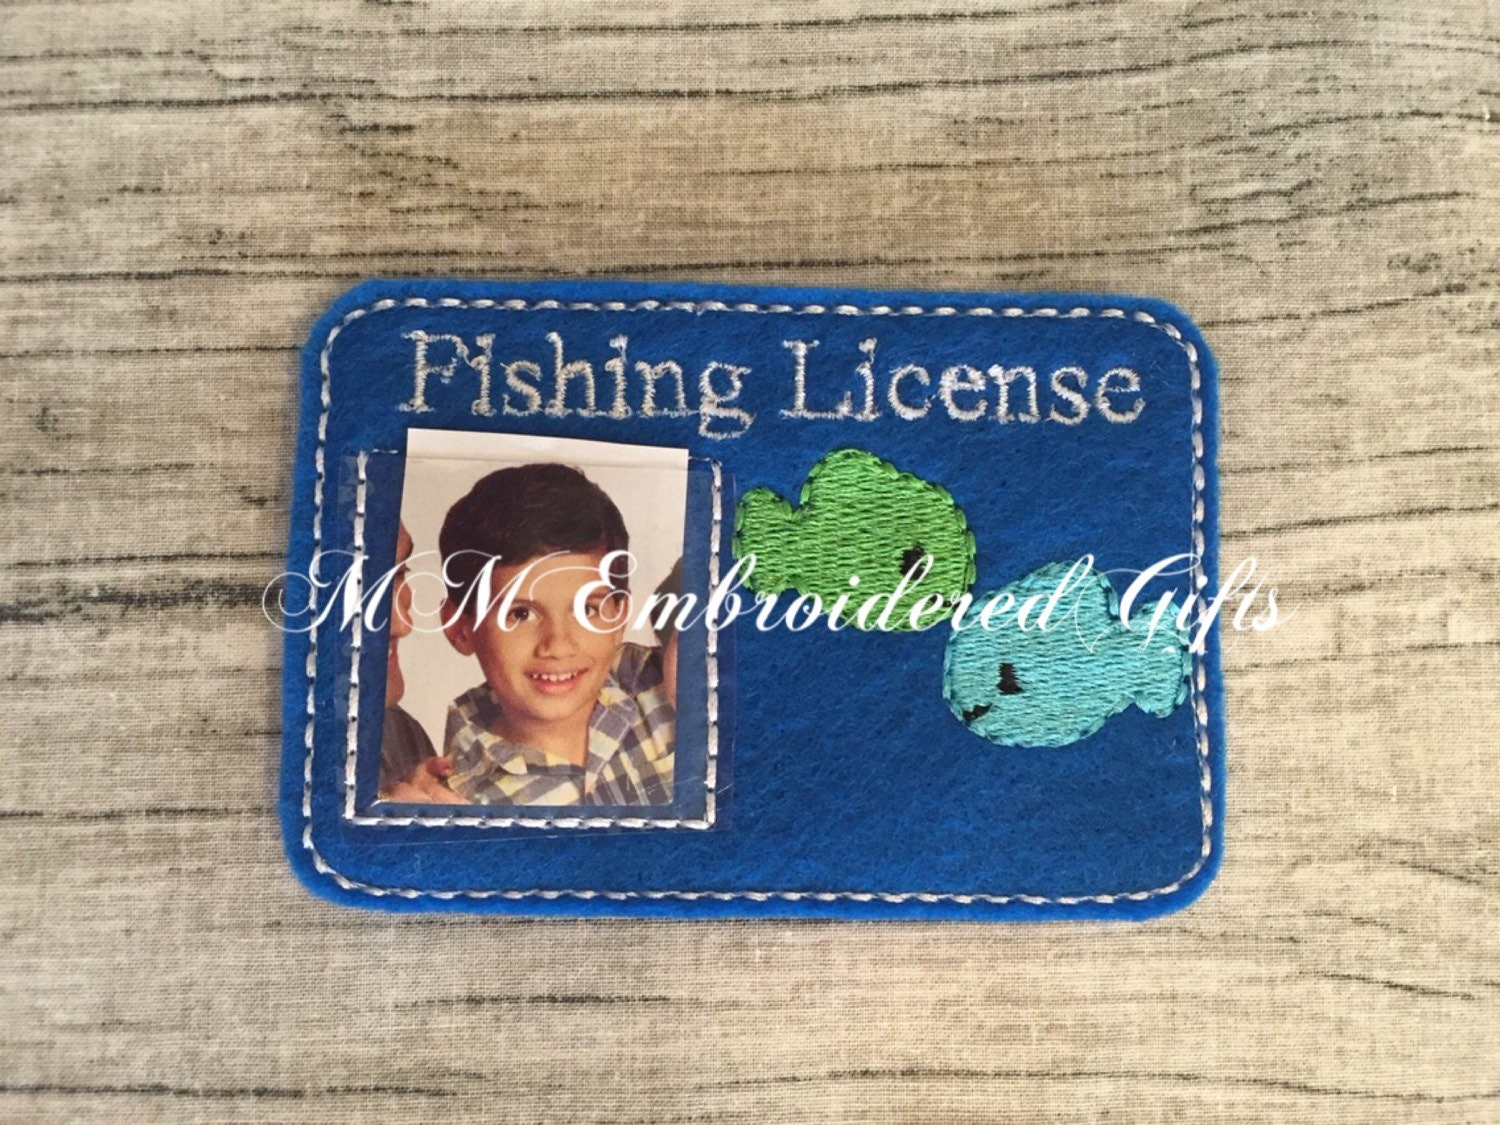 Fishing license pretend play for Fishing license illinois